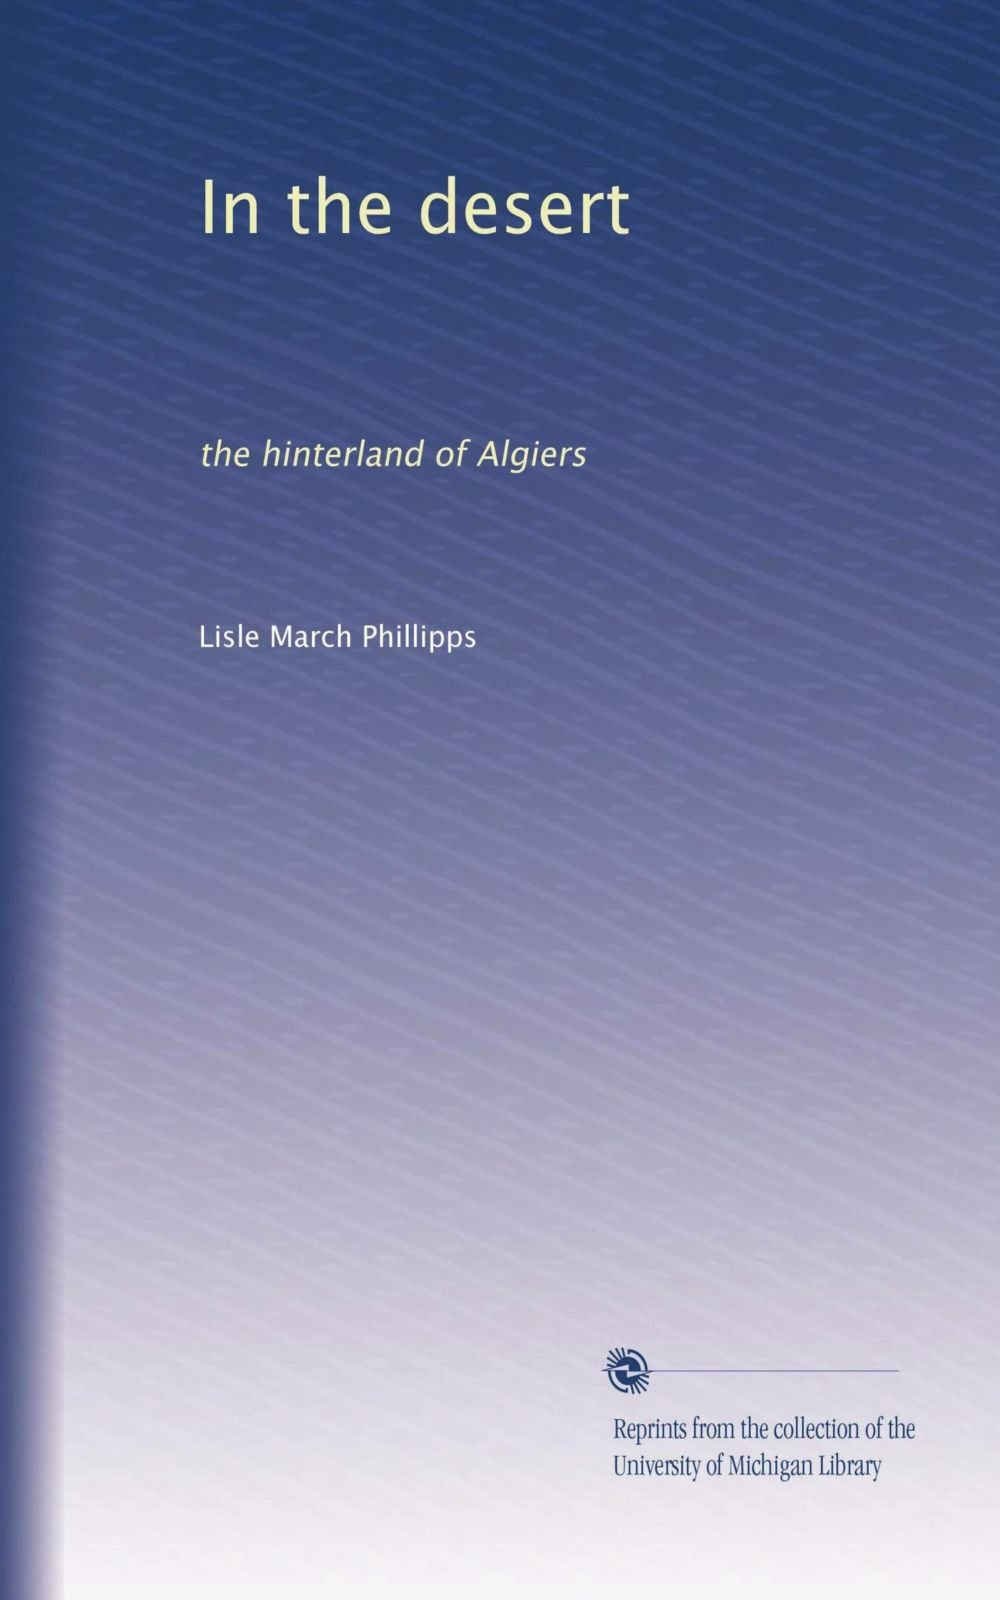 In the desert: the hinterland of Algiers